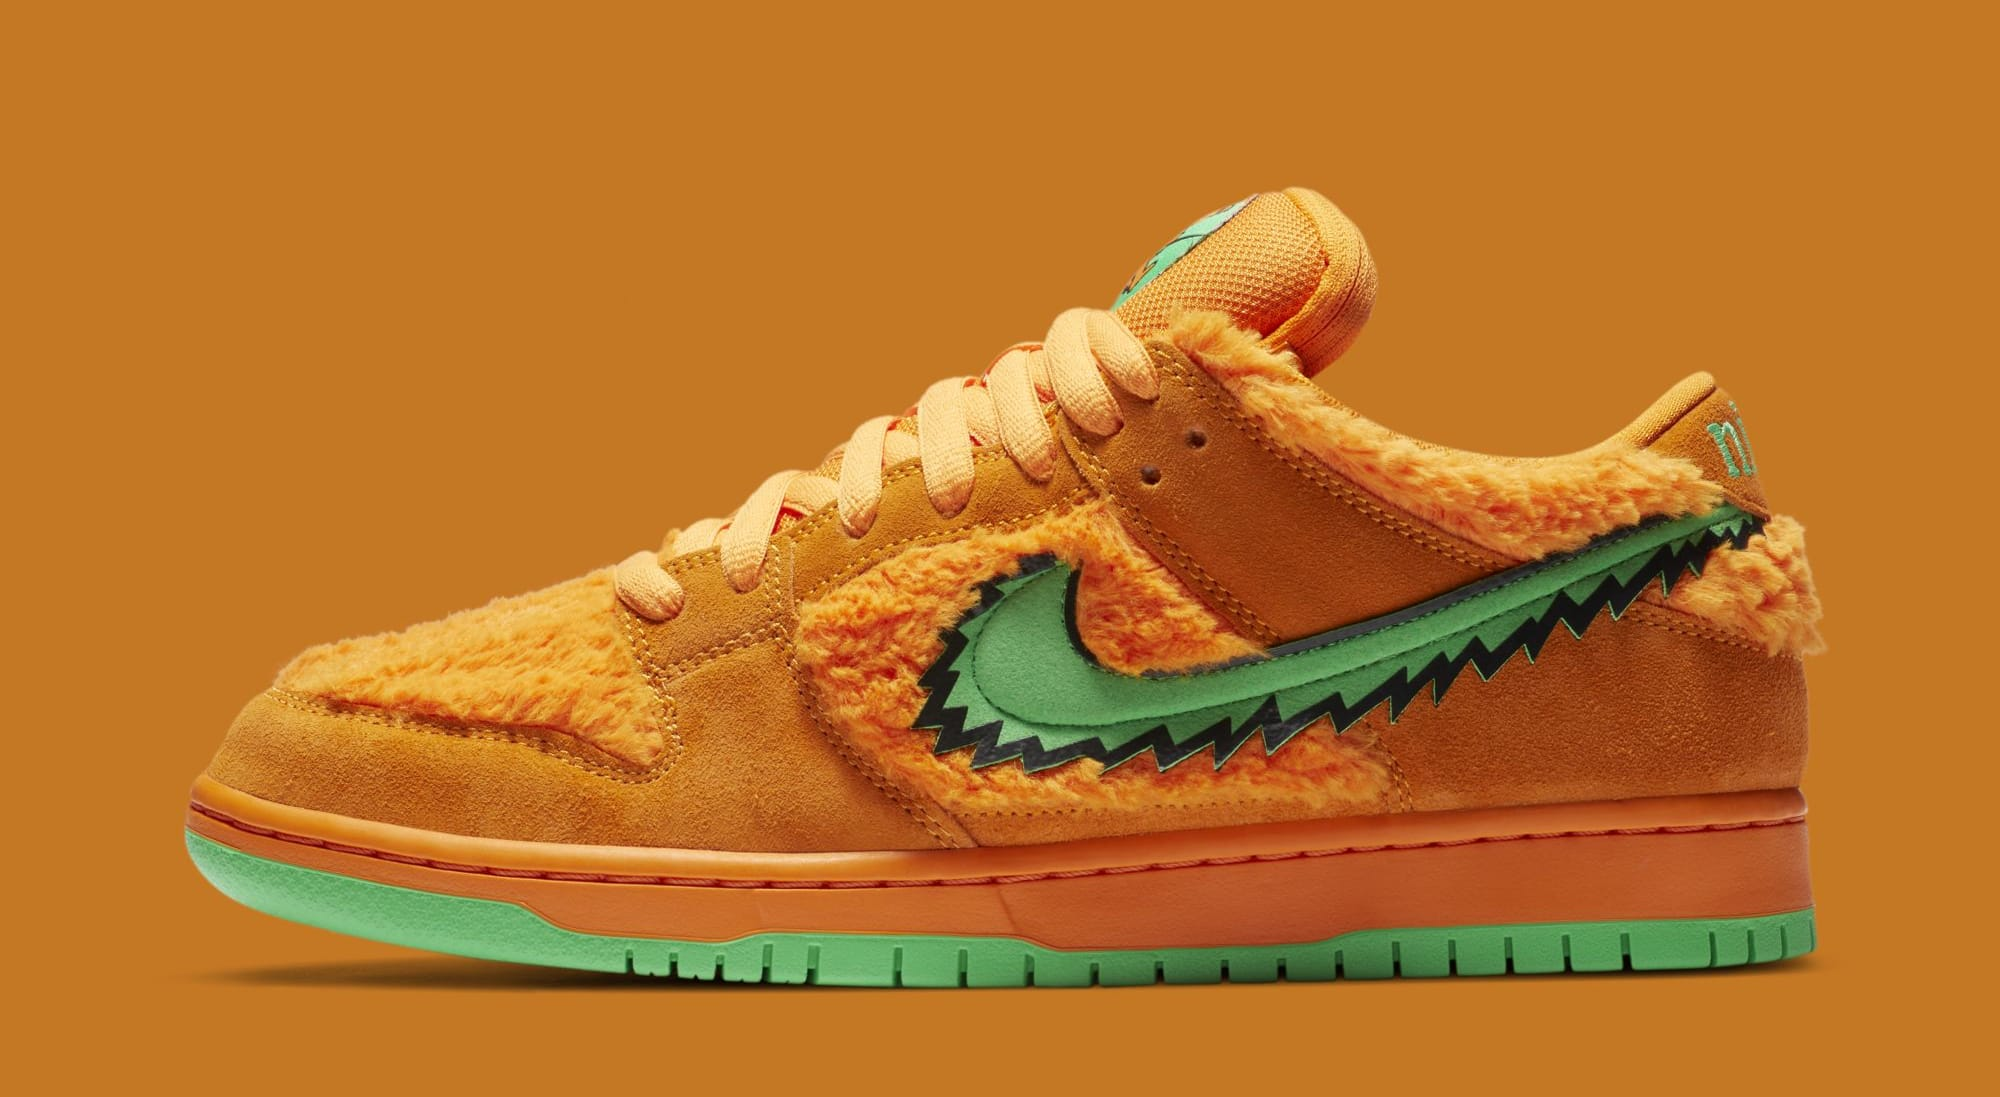 Grateful Dead x Nike SB Dunk Low 'Orange' CJ5378-800 (Lateral)